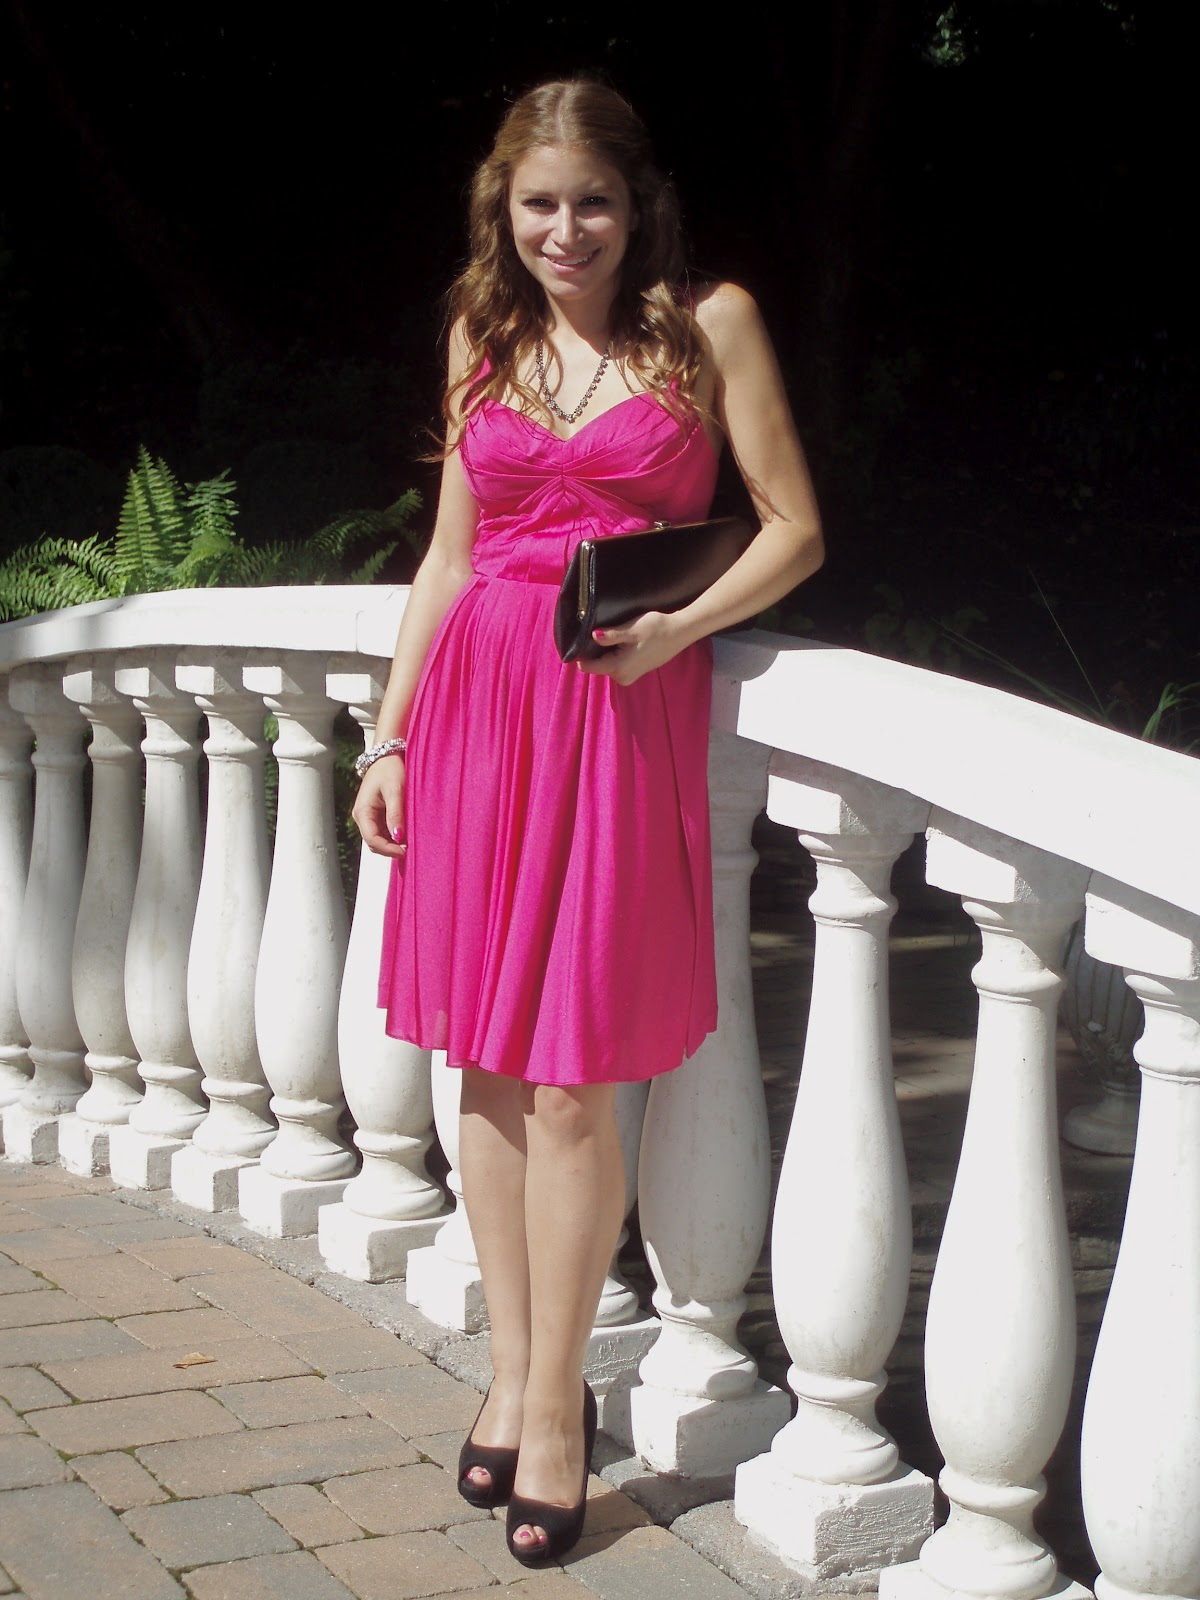 The Tiny Heart Wedding Guest Attire Hot Pink